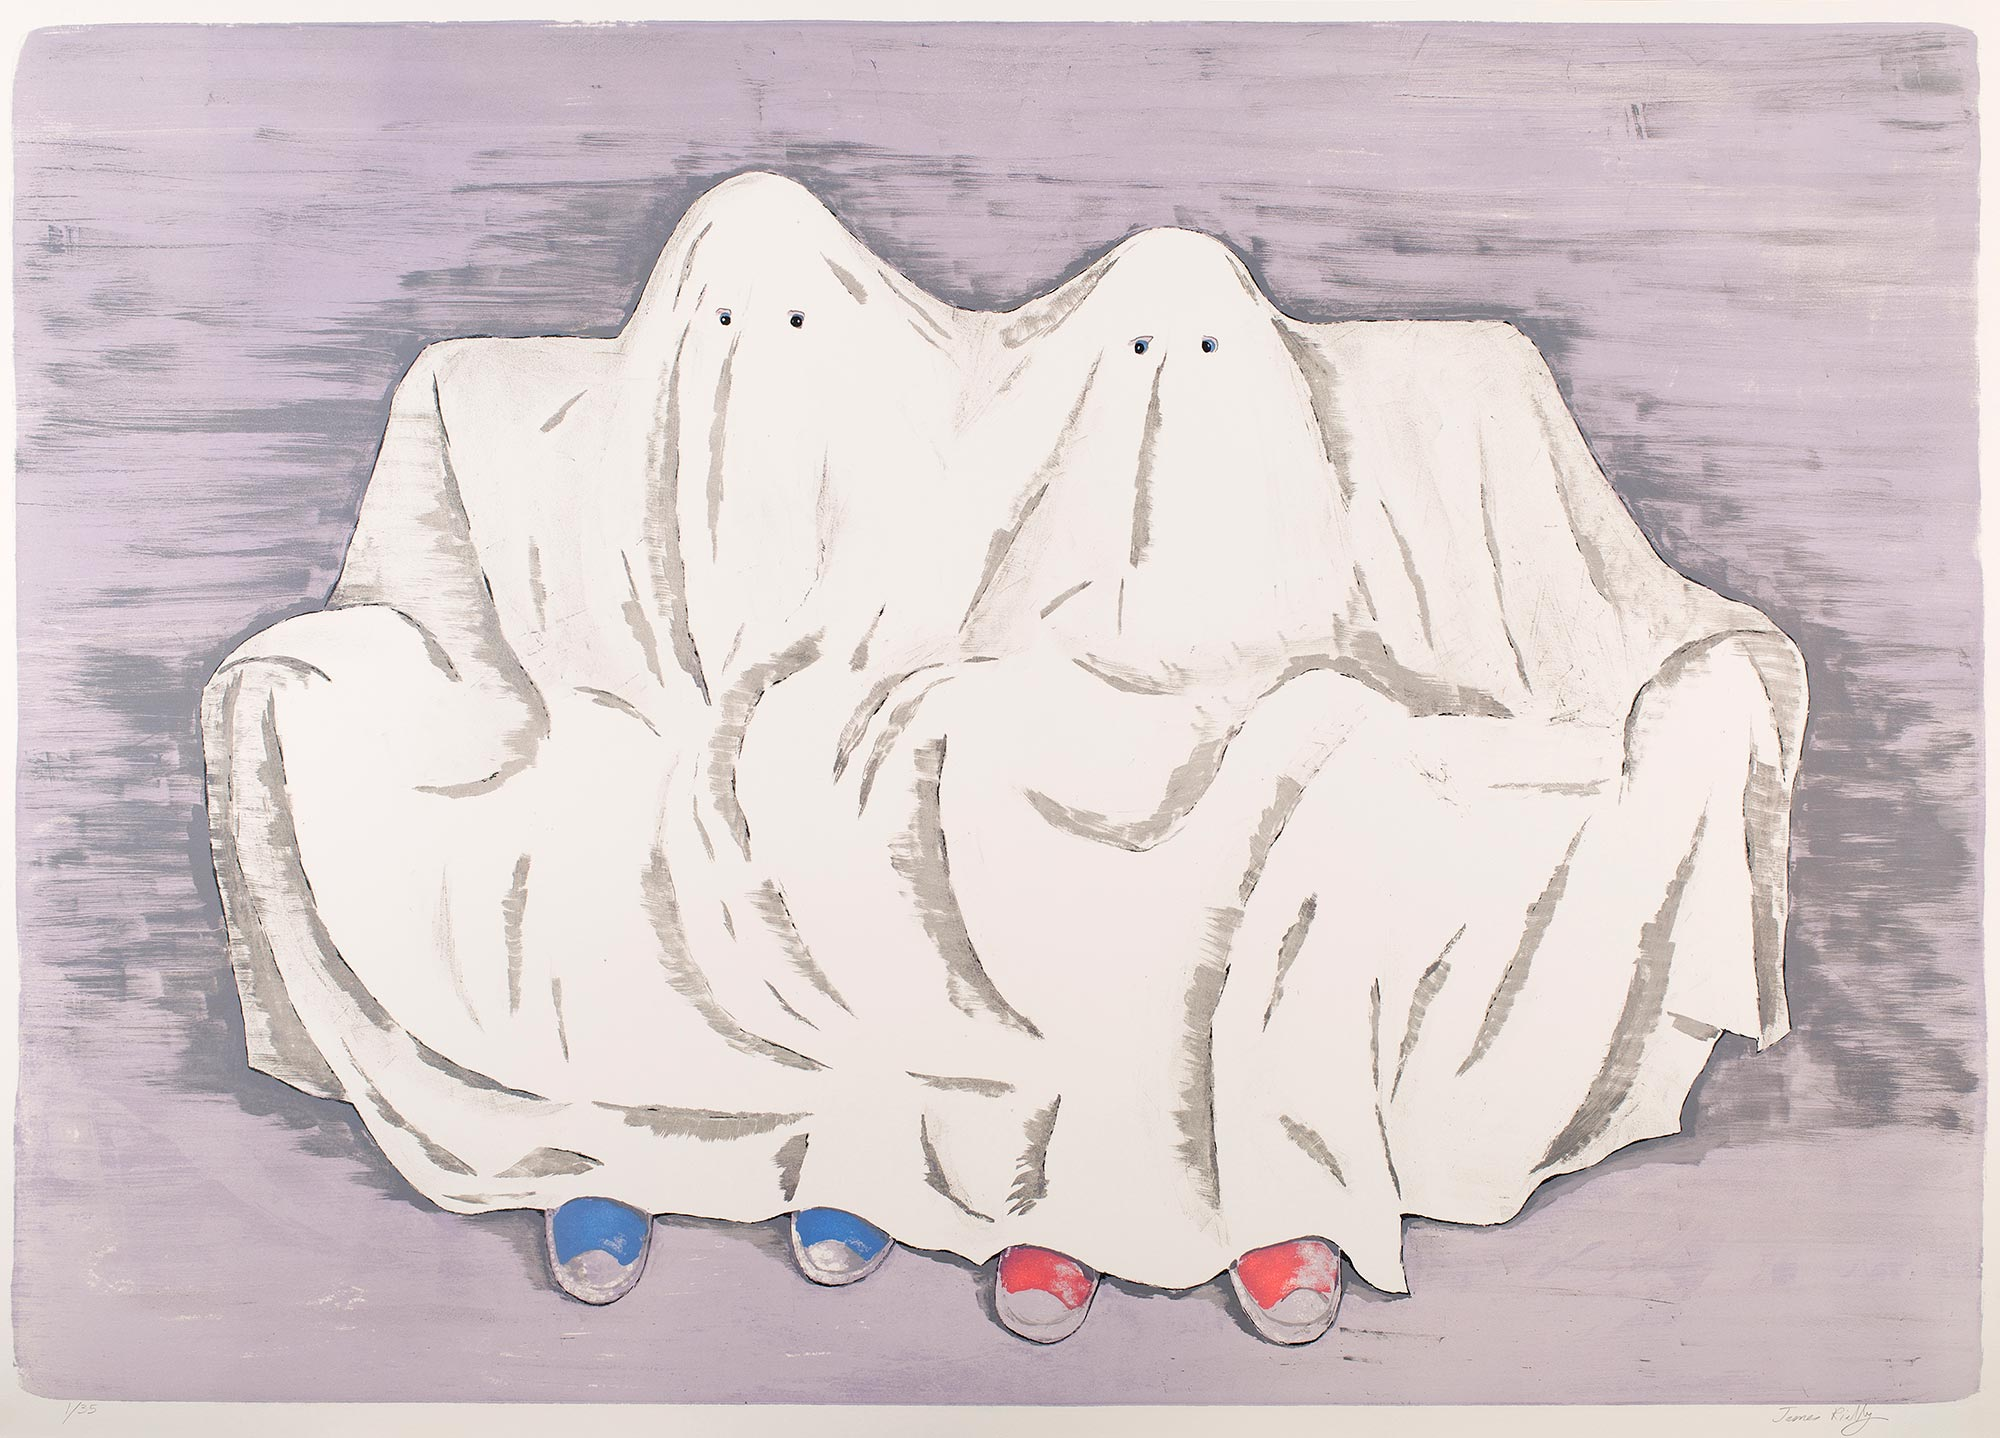 James RIELLY - French Ghosts, 2017